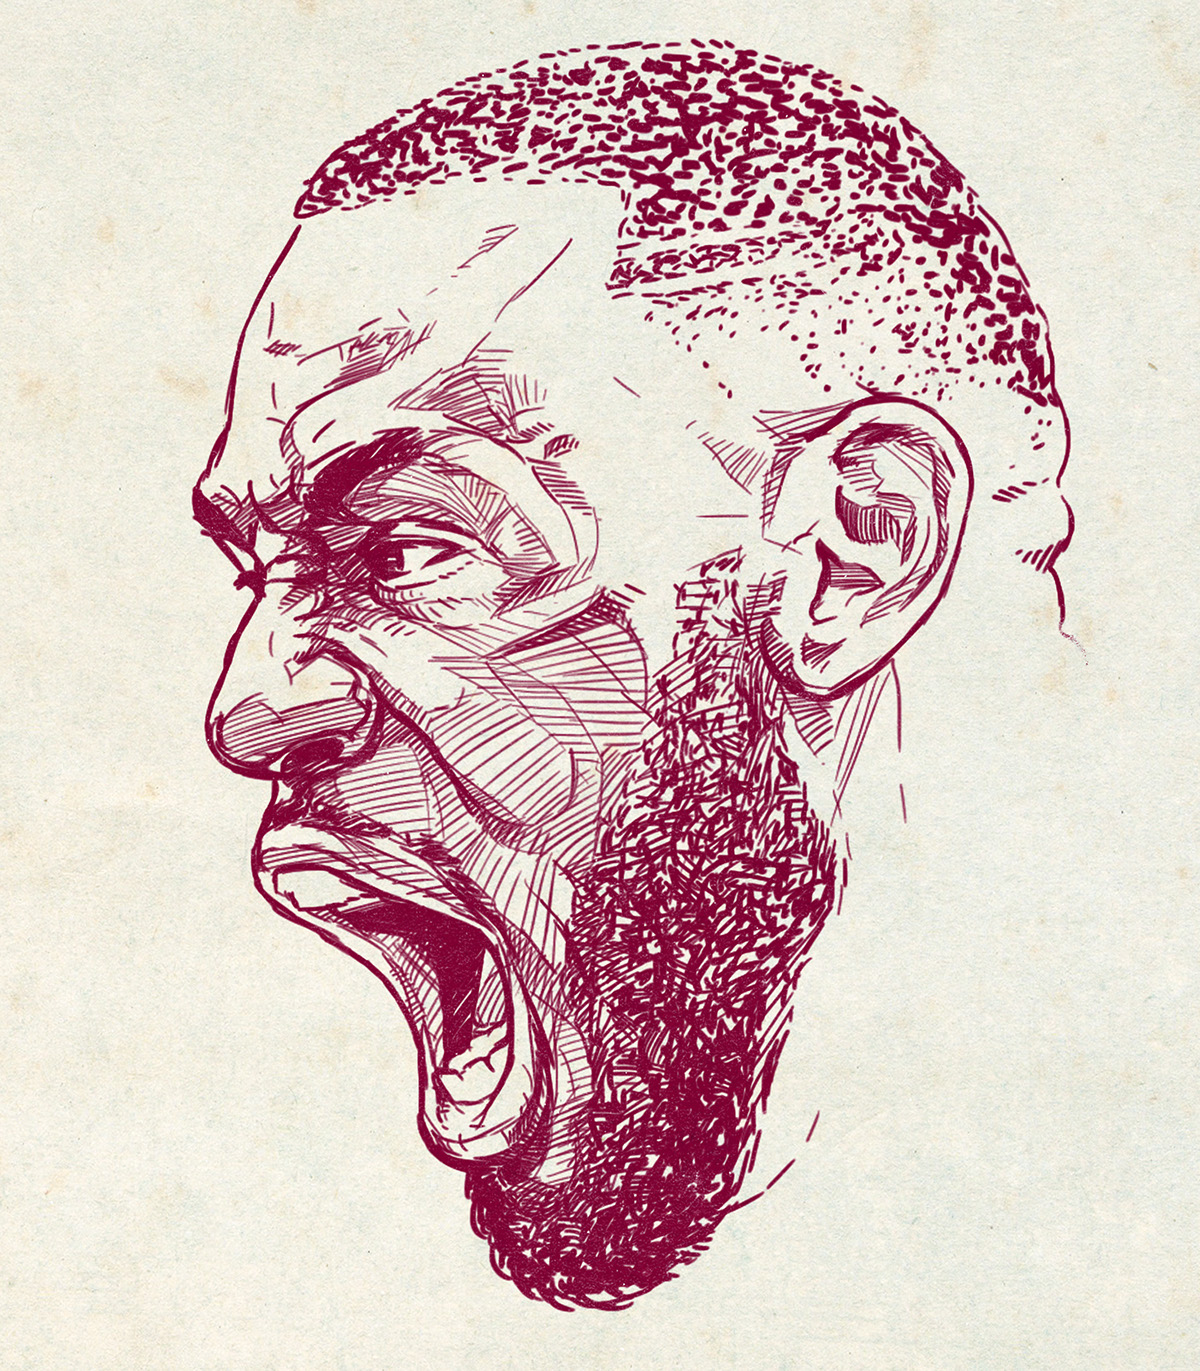 Game Faces 2016 Nba Conference Finals Fan Art On Behance